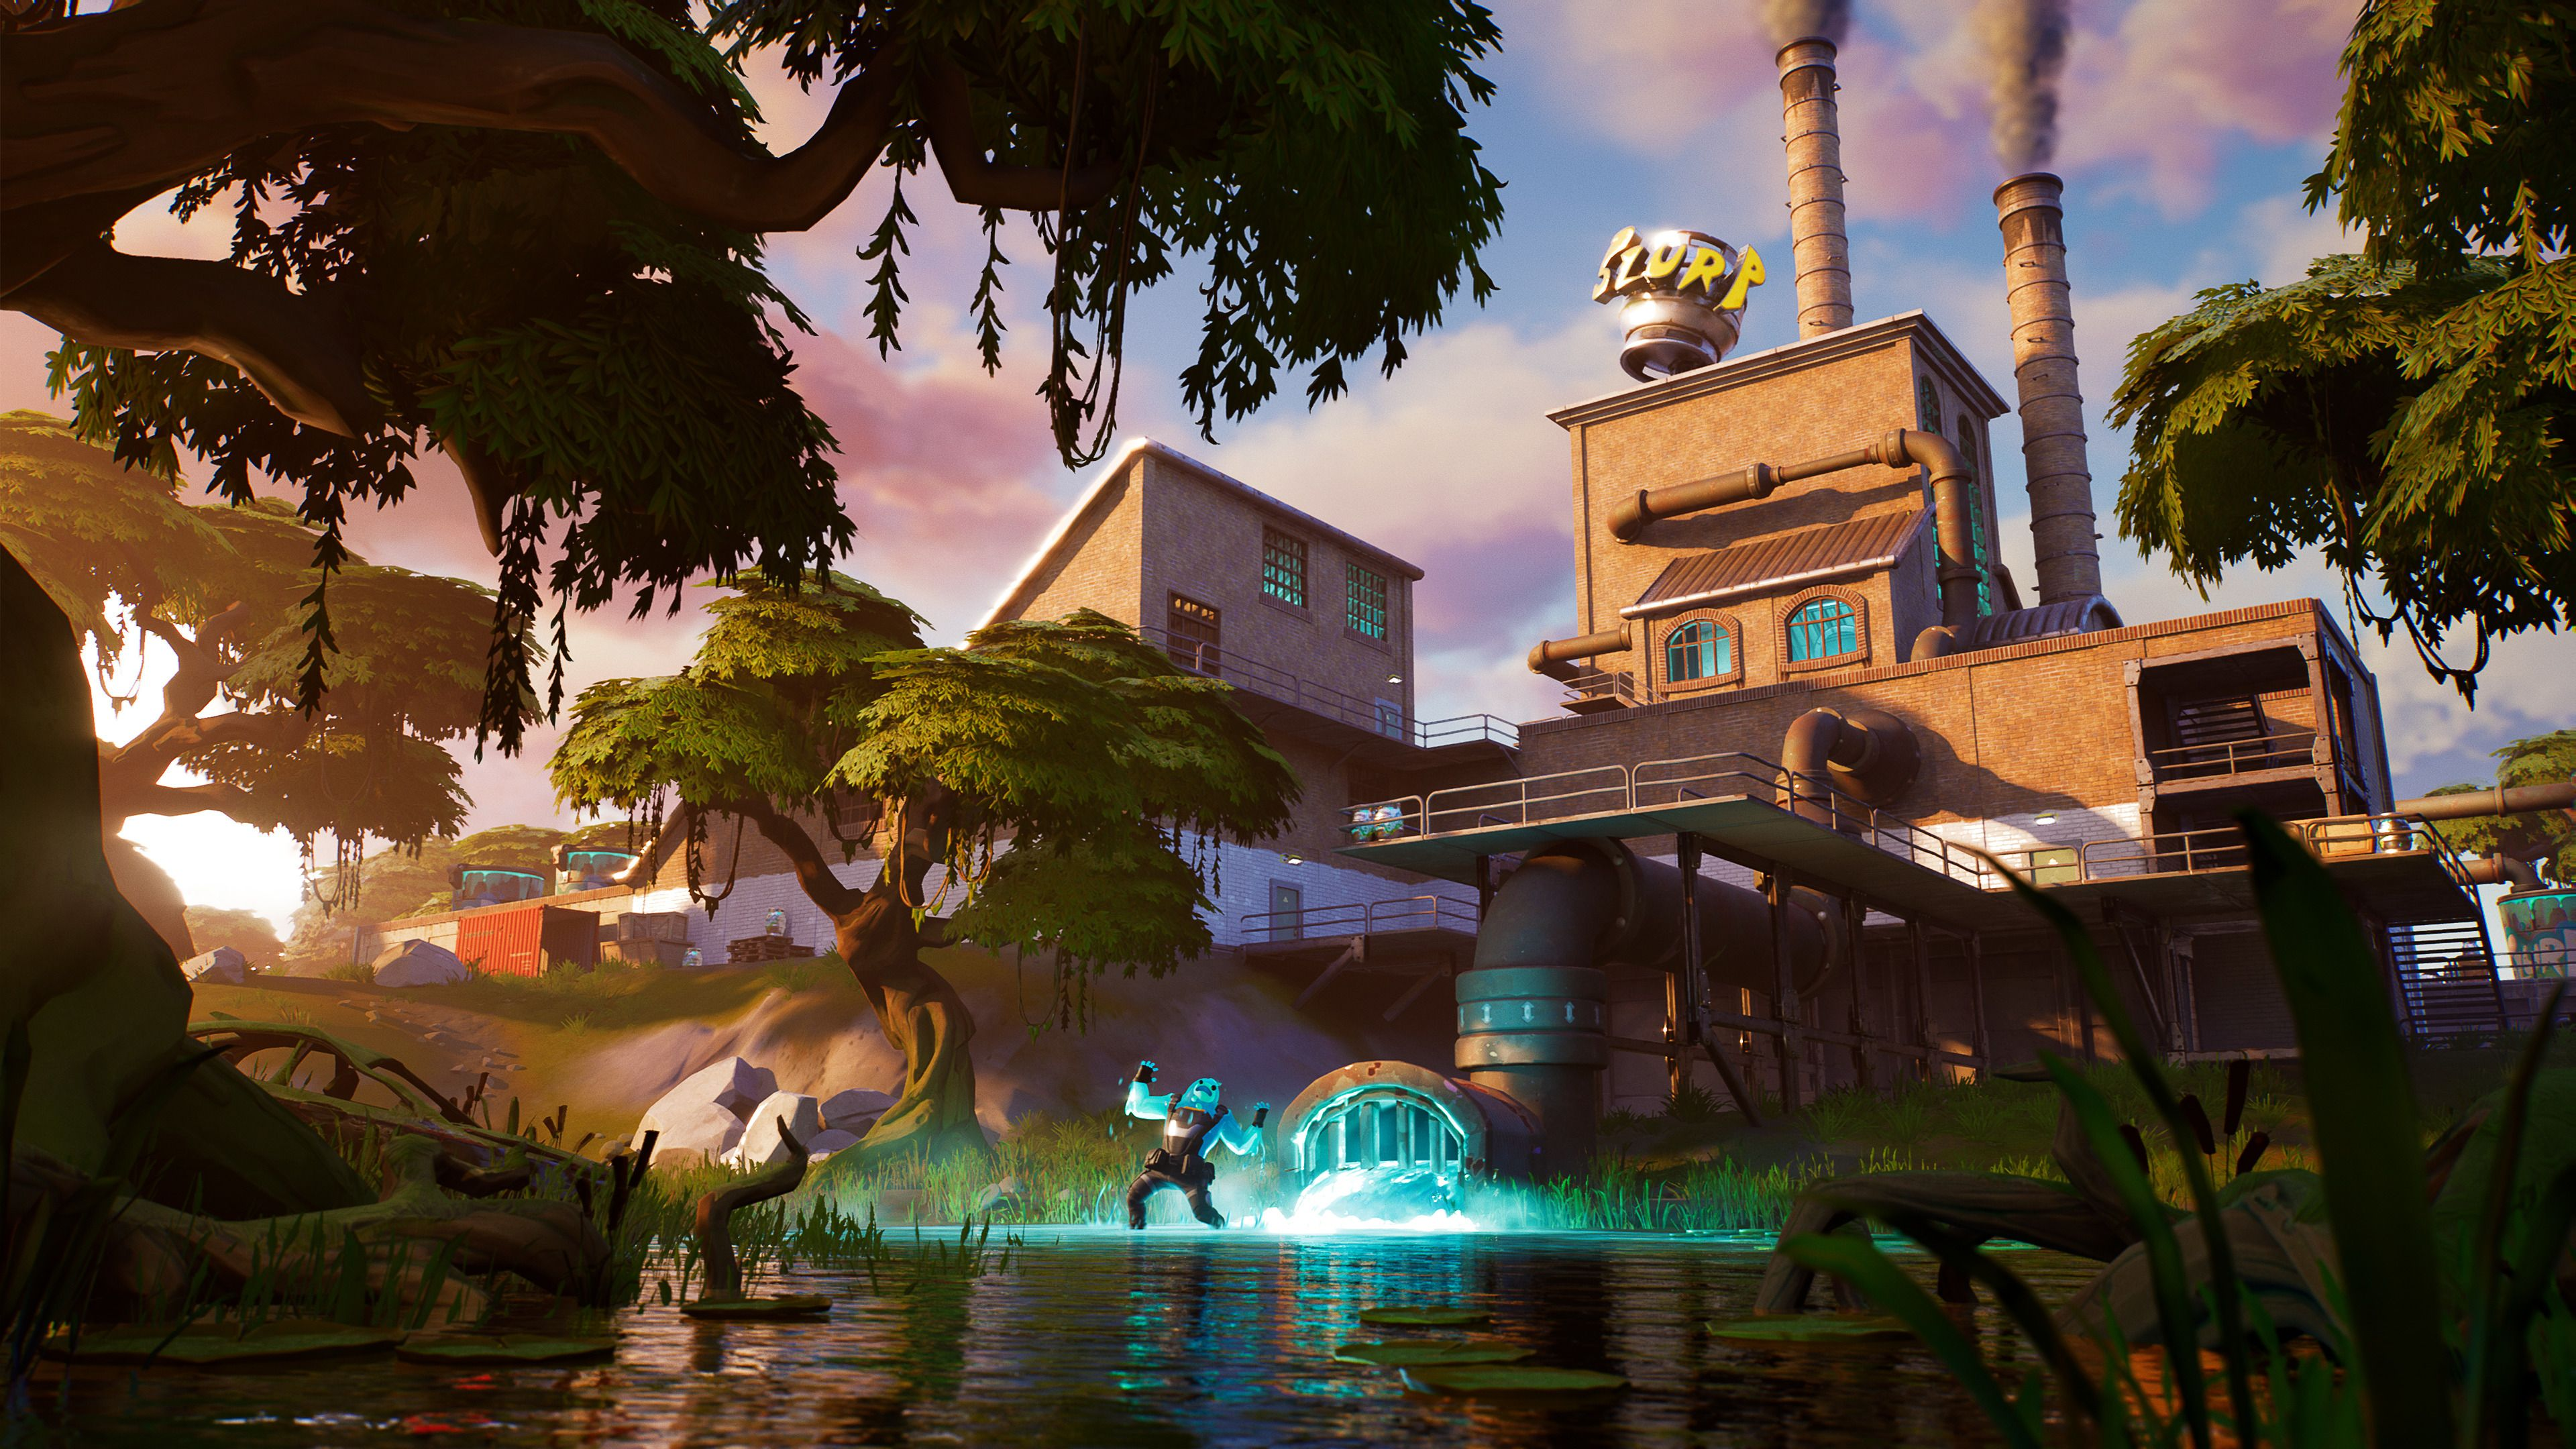 Fortnite Chapter Ii Hd Wallpapers Games Wallpapers Fortnite Wallpapers Fortnite Chapter 2 Wa Black Holes And Revelations Black Hole Wallpaper Black Hole Gif